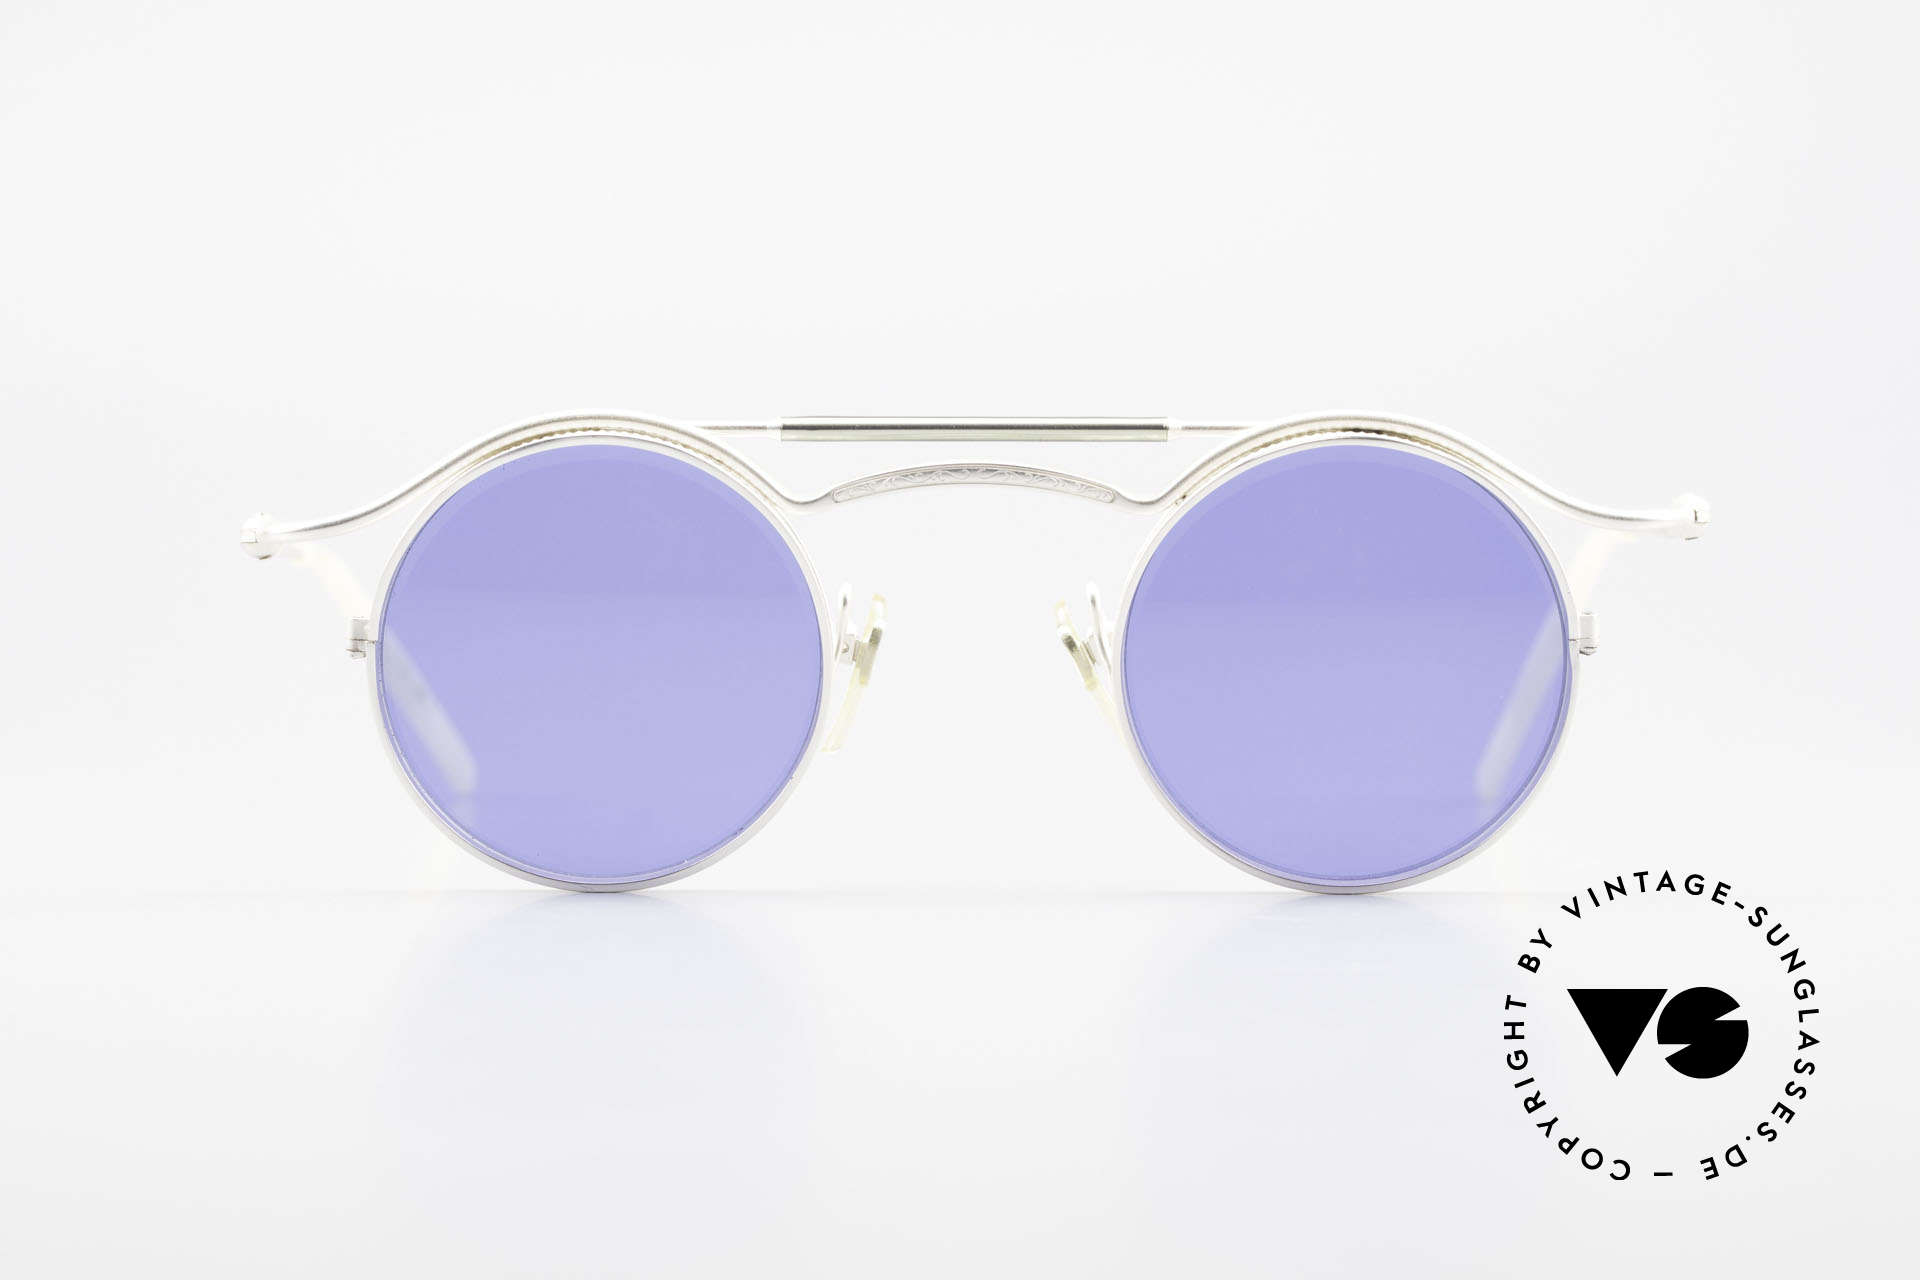 Matsuda 2903 Steampunk Sunglasses 90's, 'Steampunk sunglasses' by the jap. 'design manufactory', Made for Men and Women